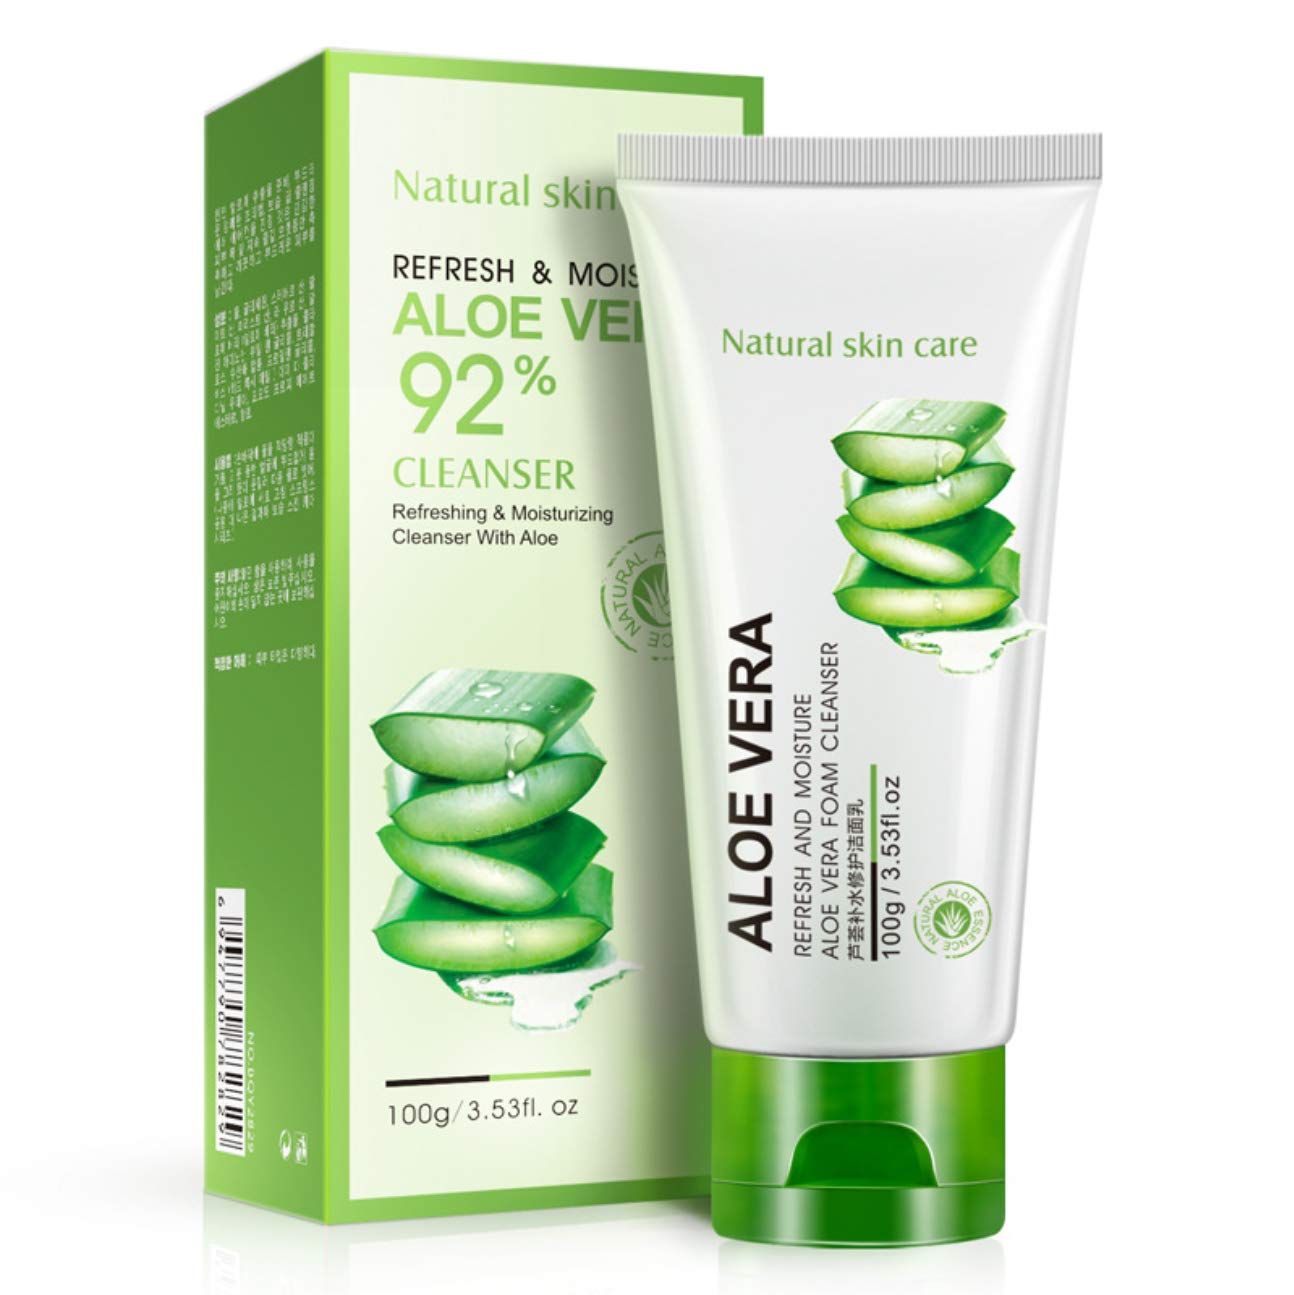 BIOAQUA 92% Aloe Vera Foam Cleanser - Refresh & Moisture Aloe Vera 92% Cleanser. Shrink Pores & Oil Control Deep Cleaning Face Cleanser.(100g)